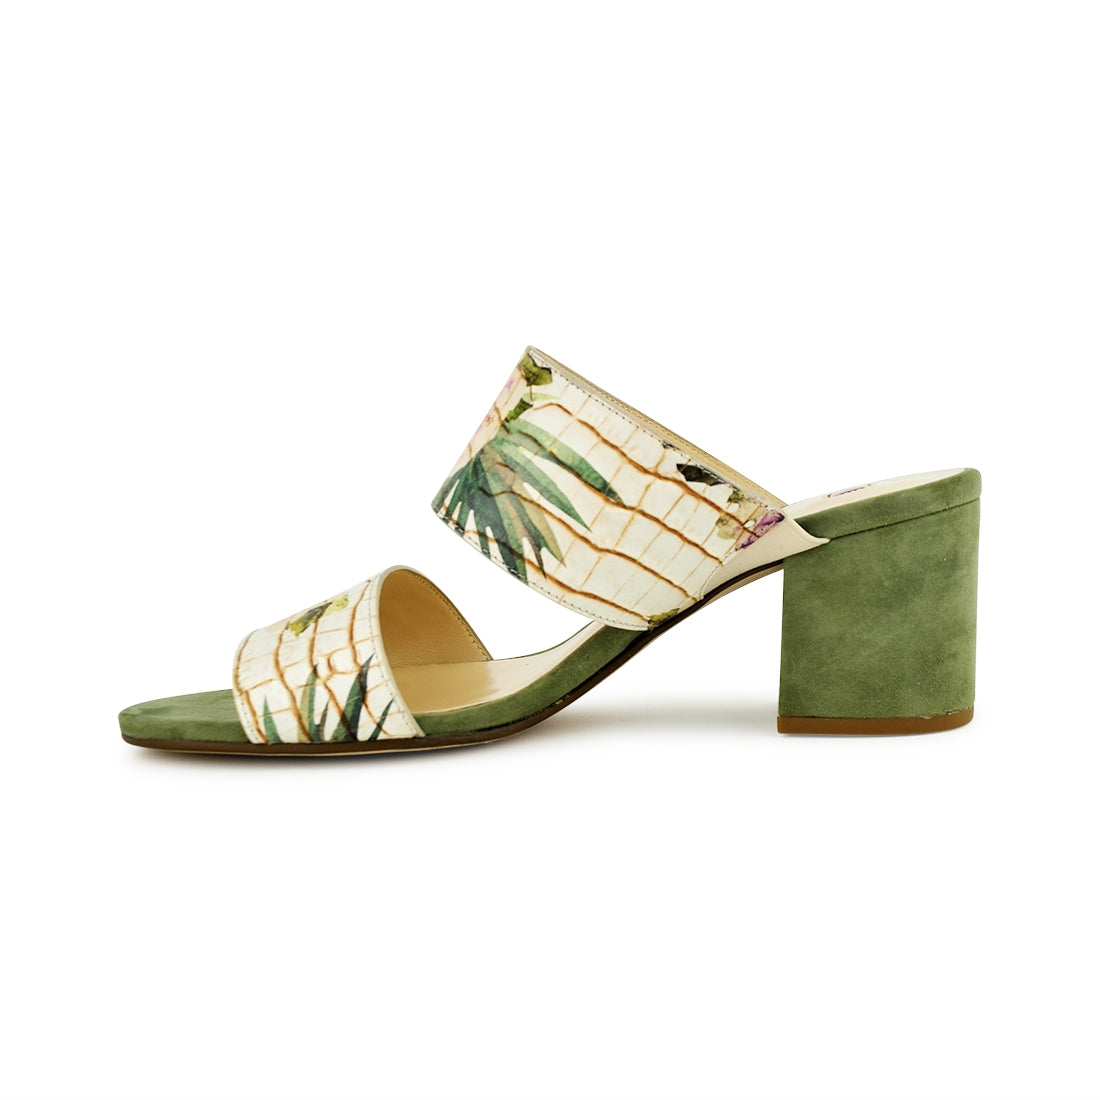 BLOOM - Hogl Sandal Green Print